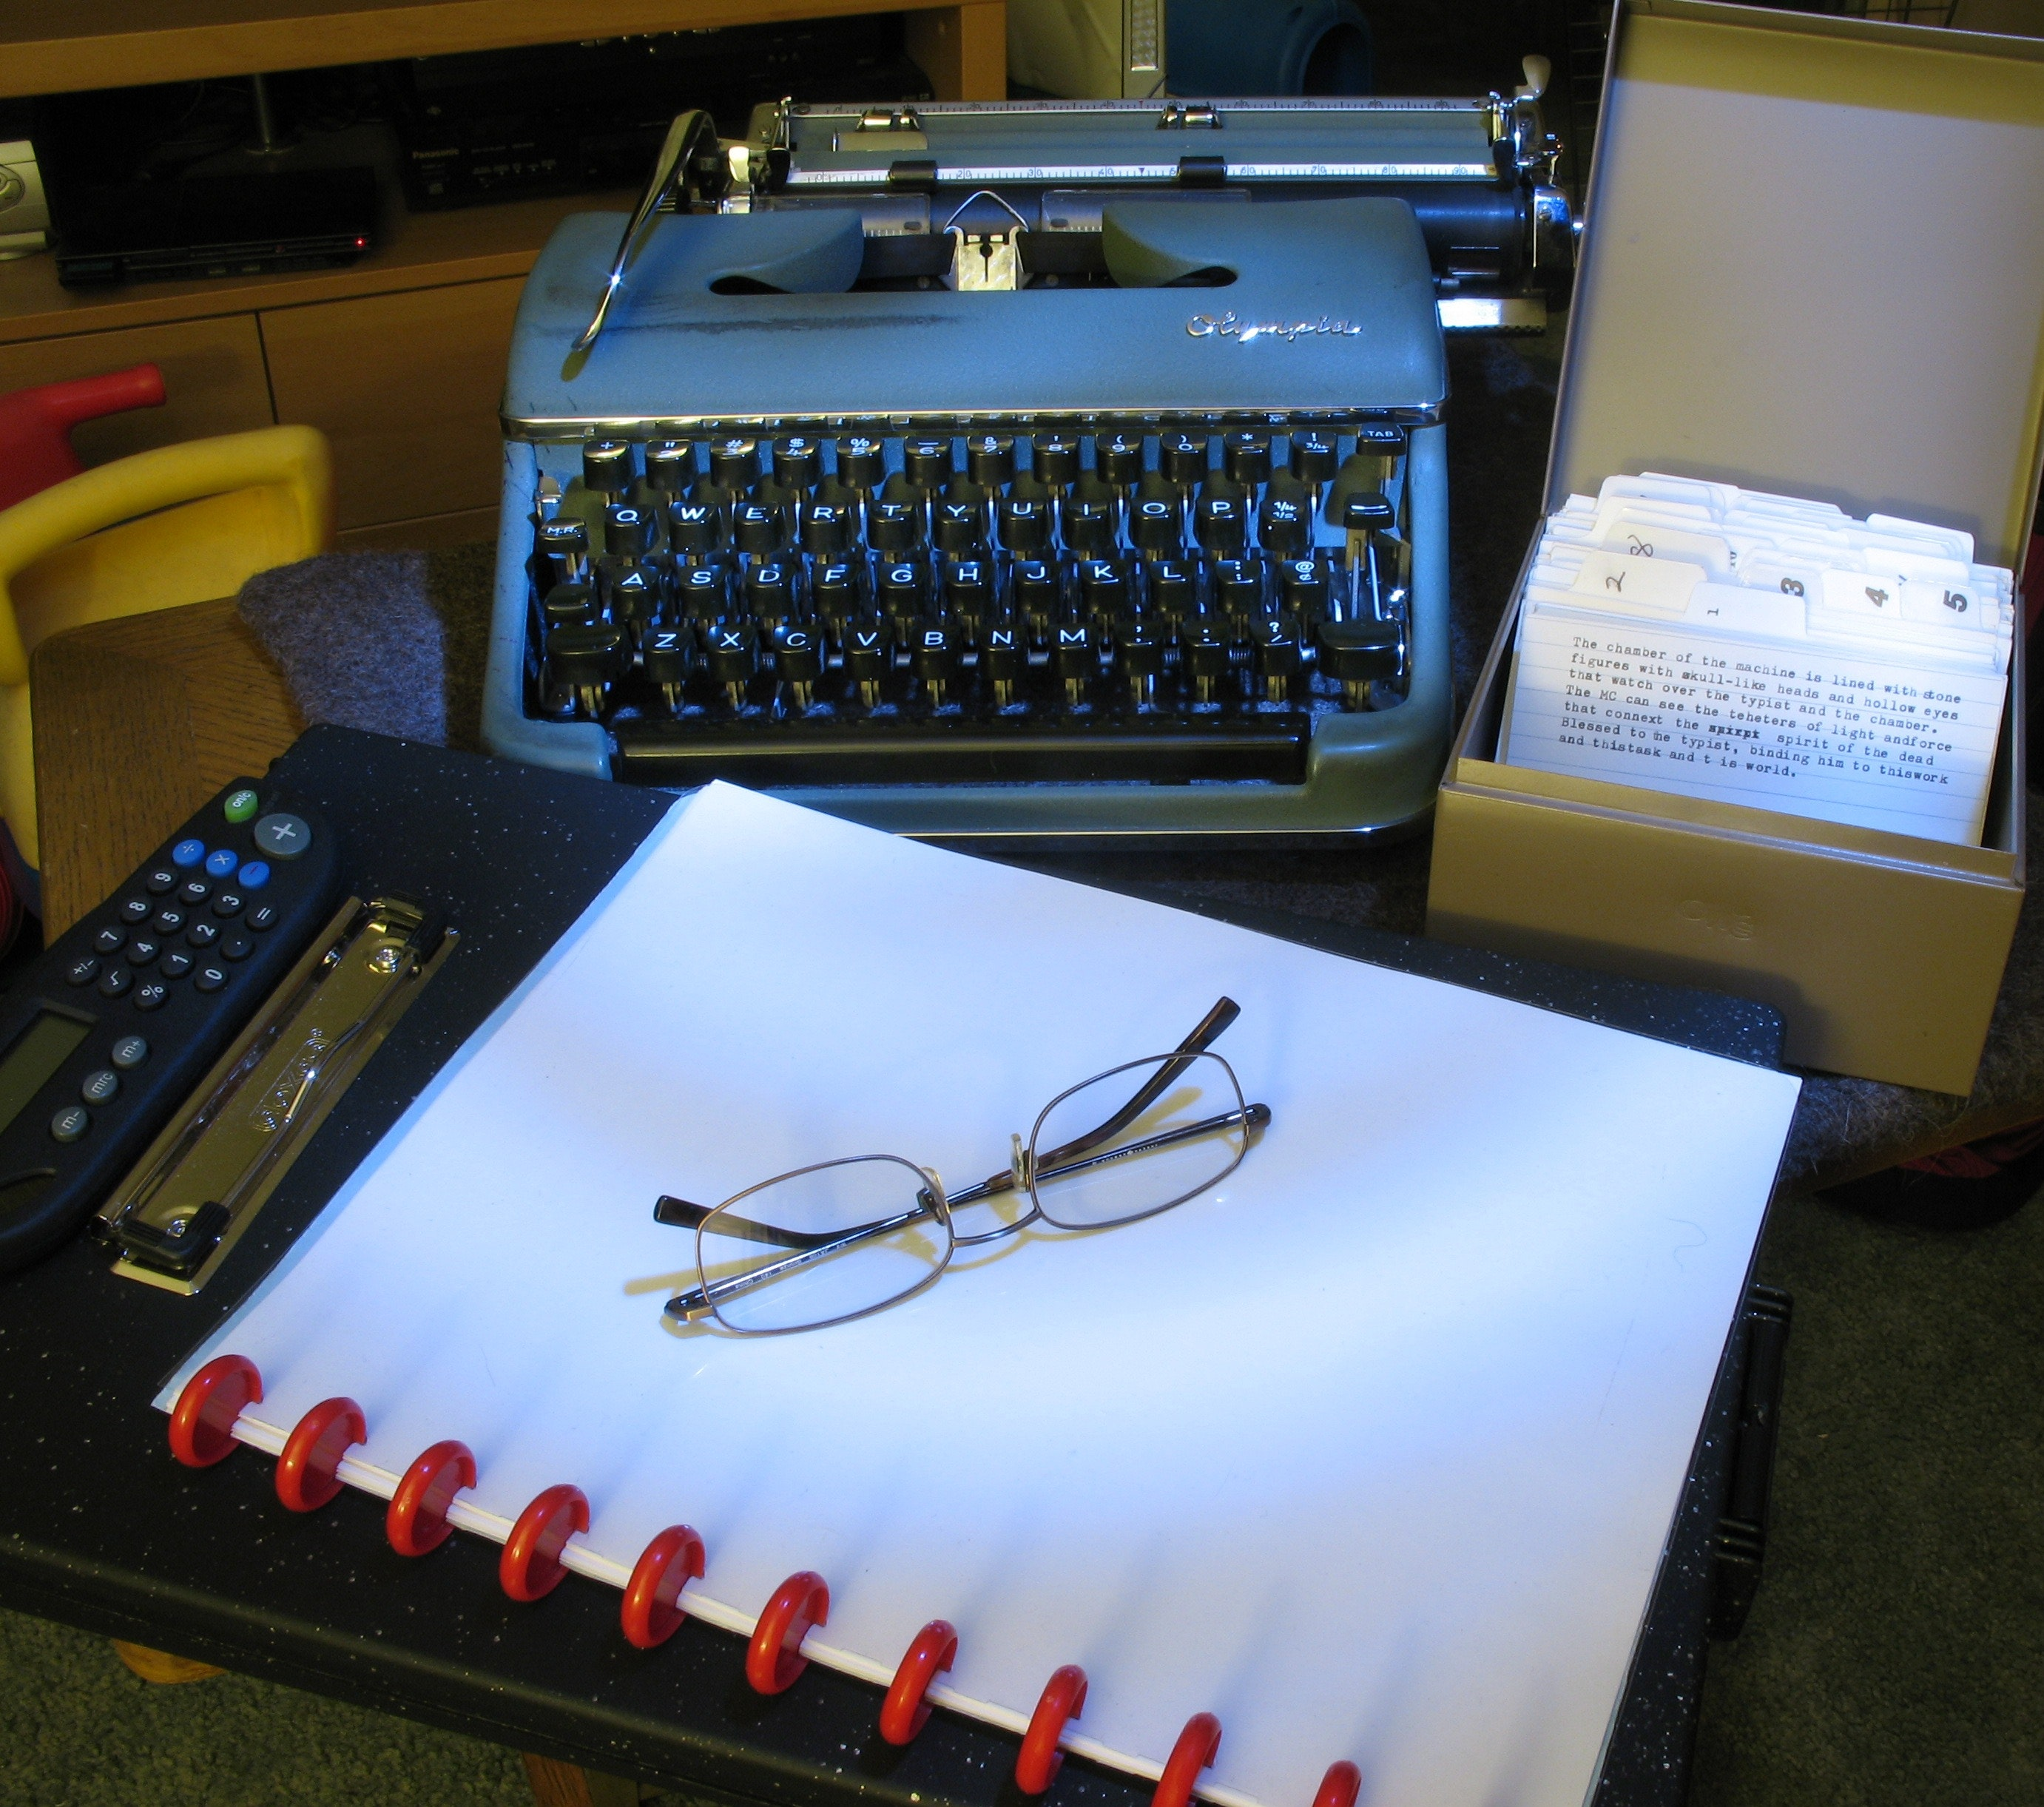 University writing programs deliver, so let's turn the page